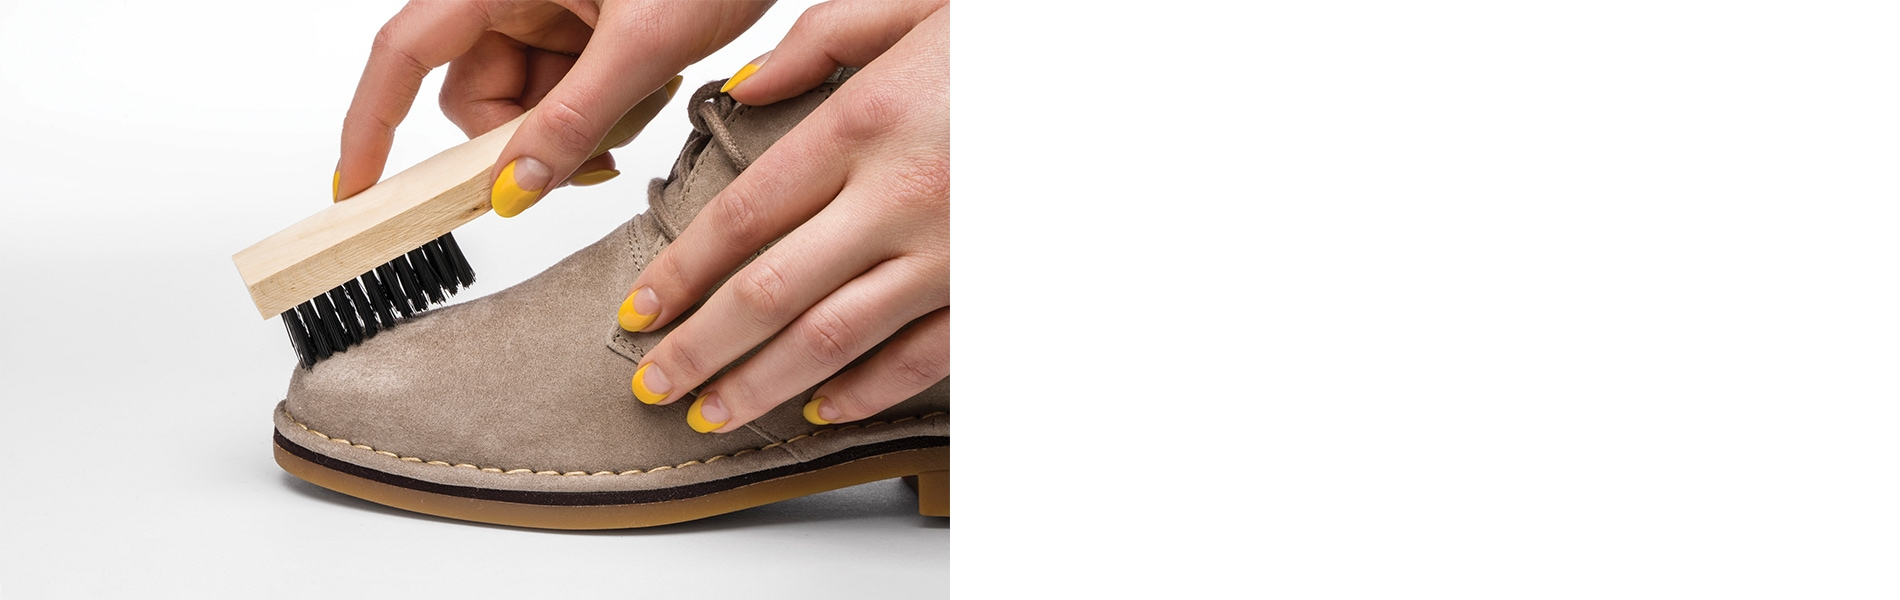 Person brushing a suede Hush Puppies shoe